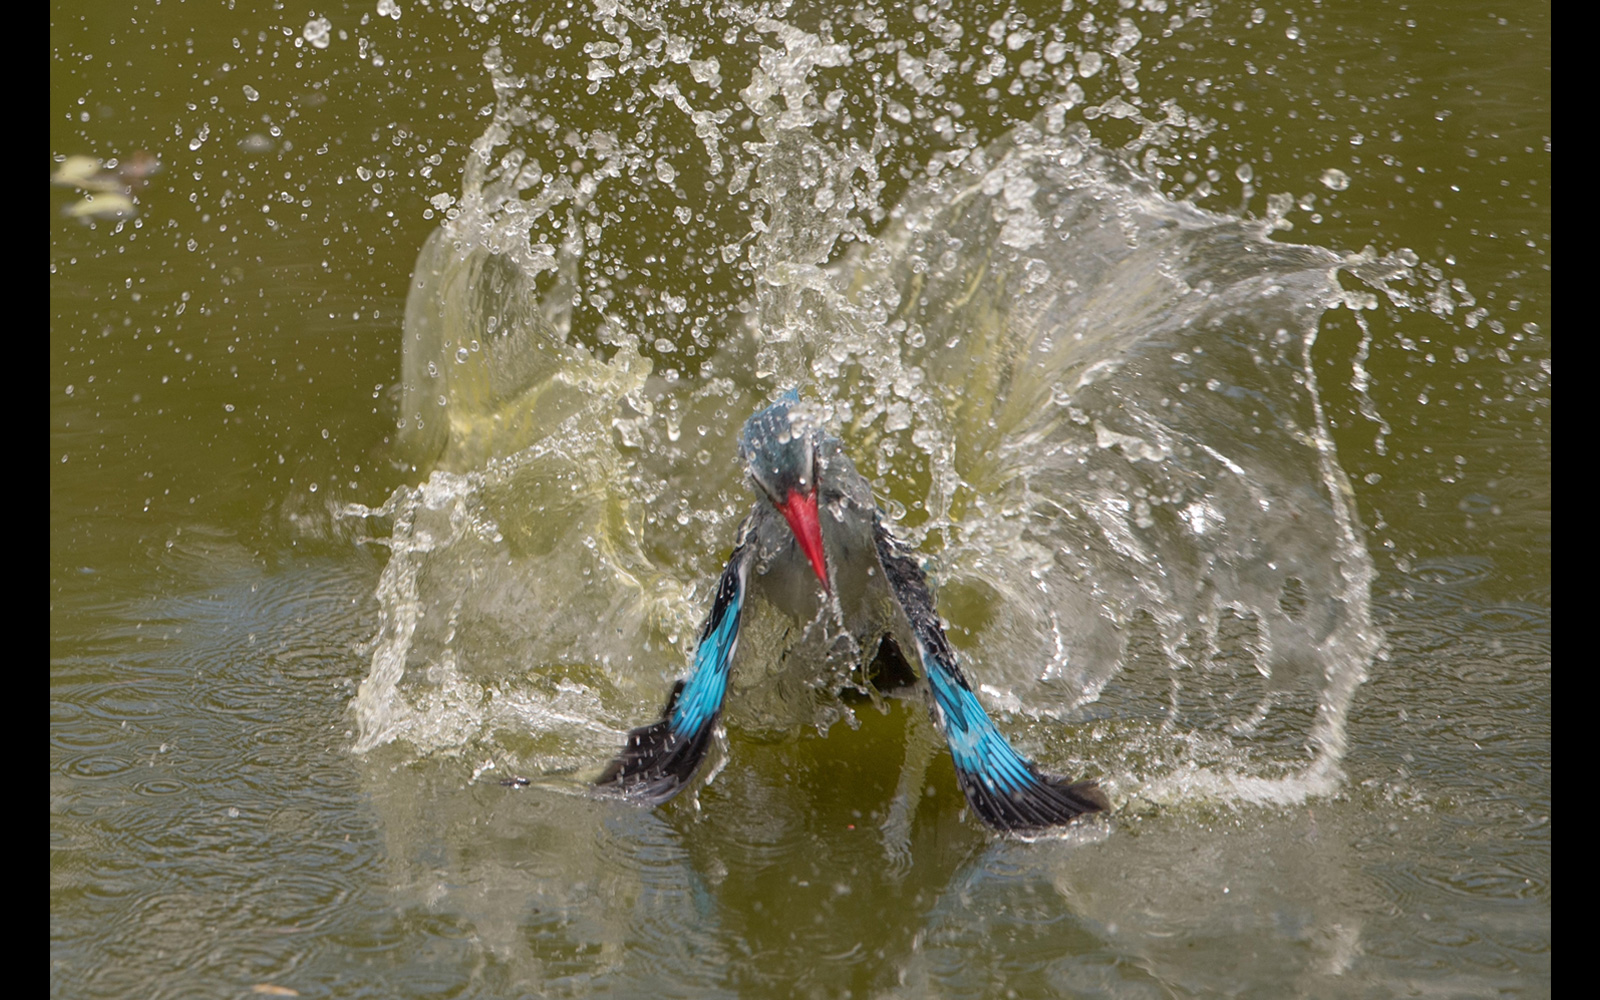 A woodland kingfisher takes a bath in Makutsi Safari Springs, Hoedspruit, South Africa © Urs Niklaus